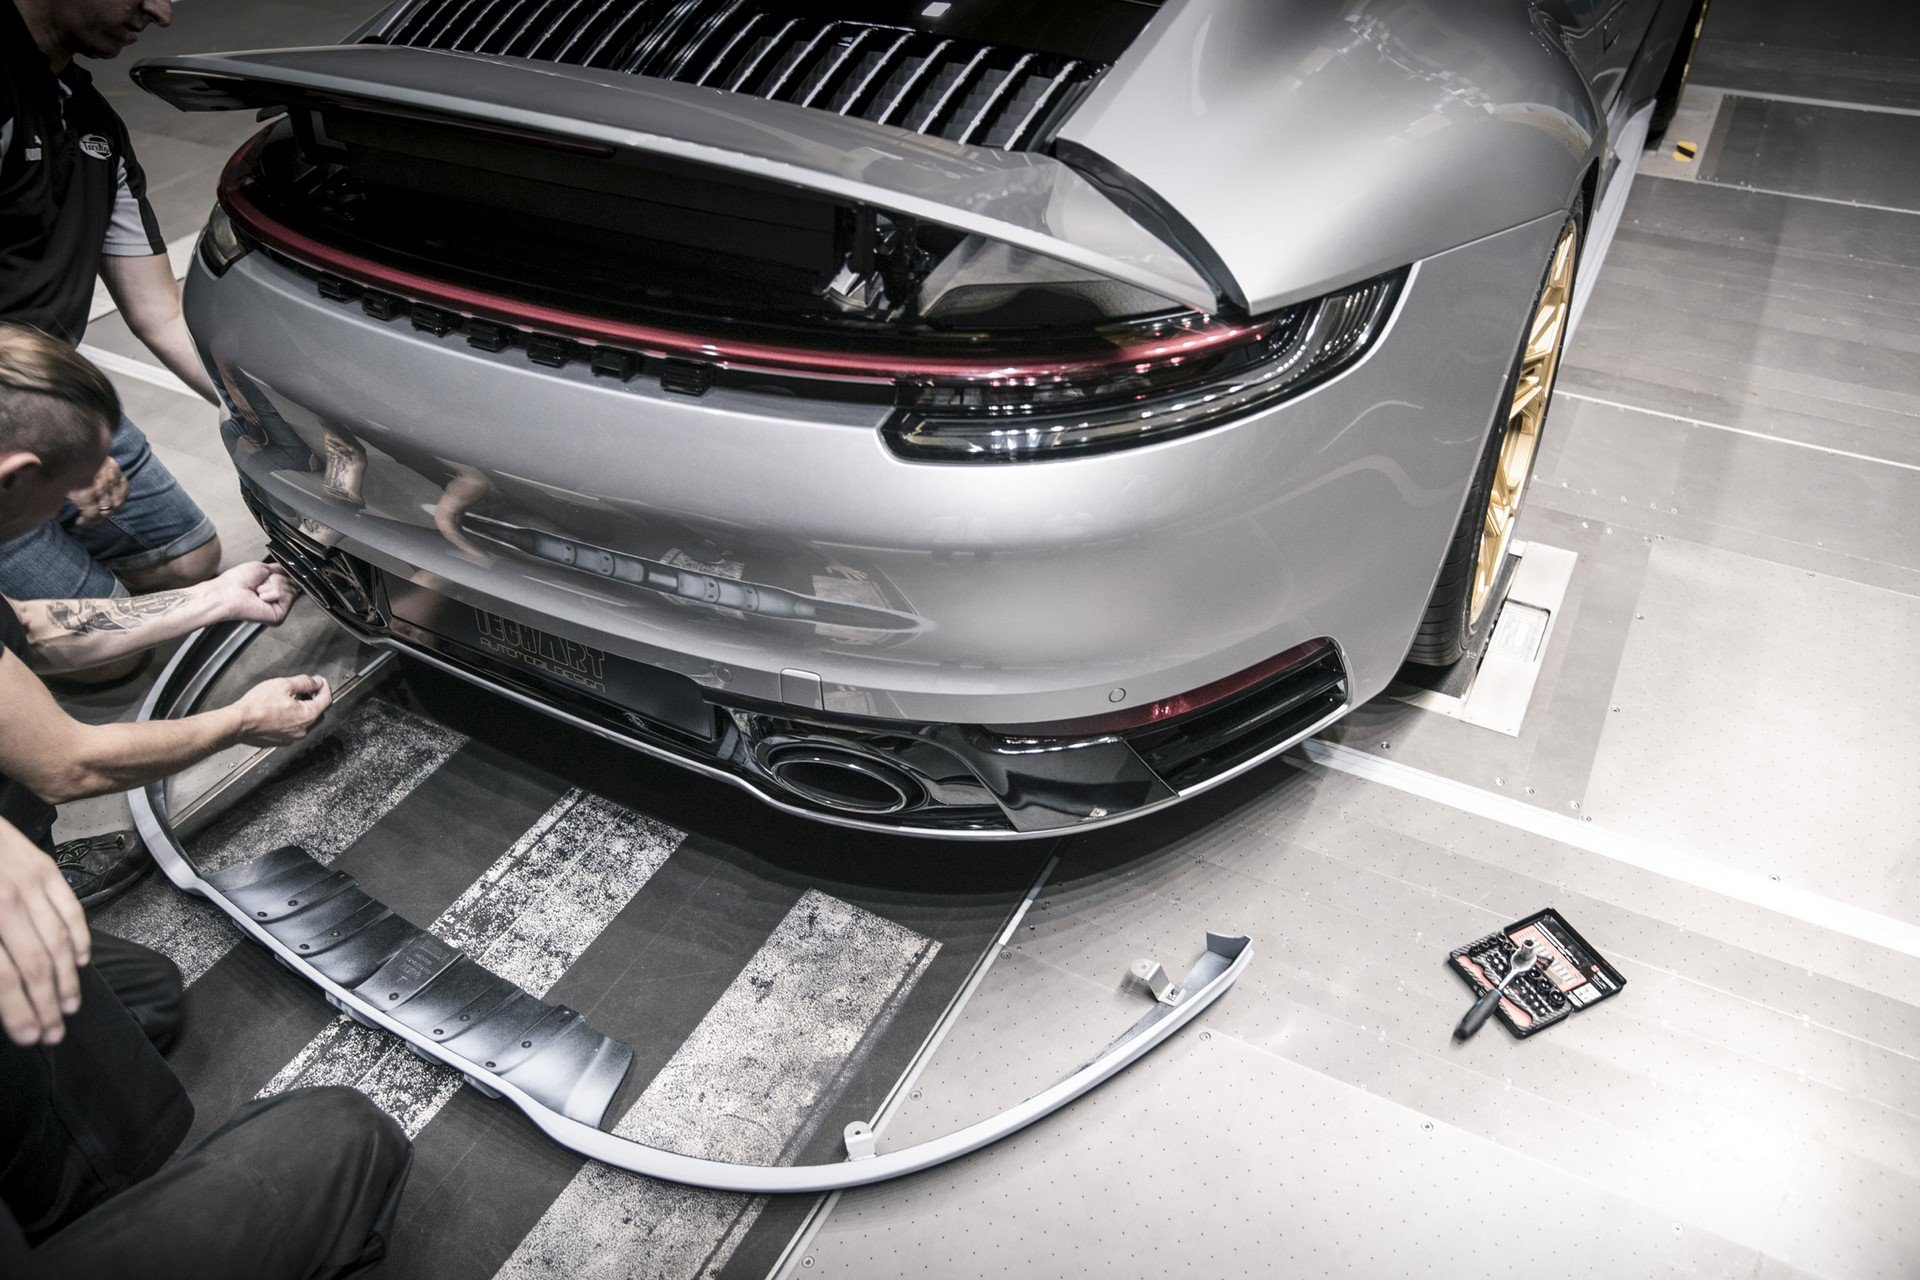 Porsche-911-Carrera-4S-by-TechArt-57